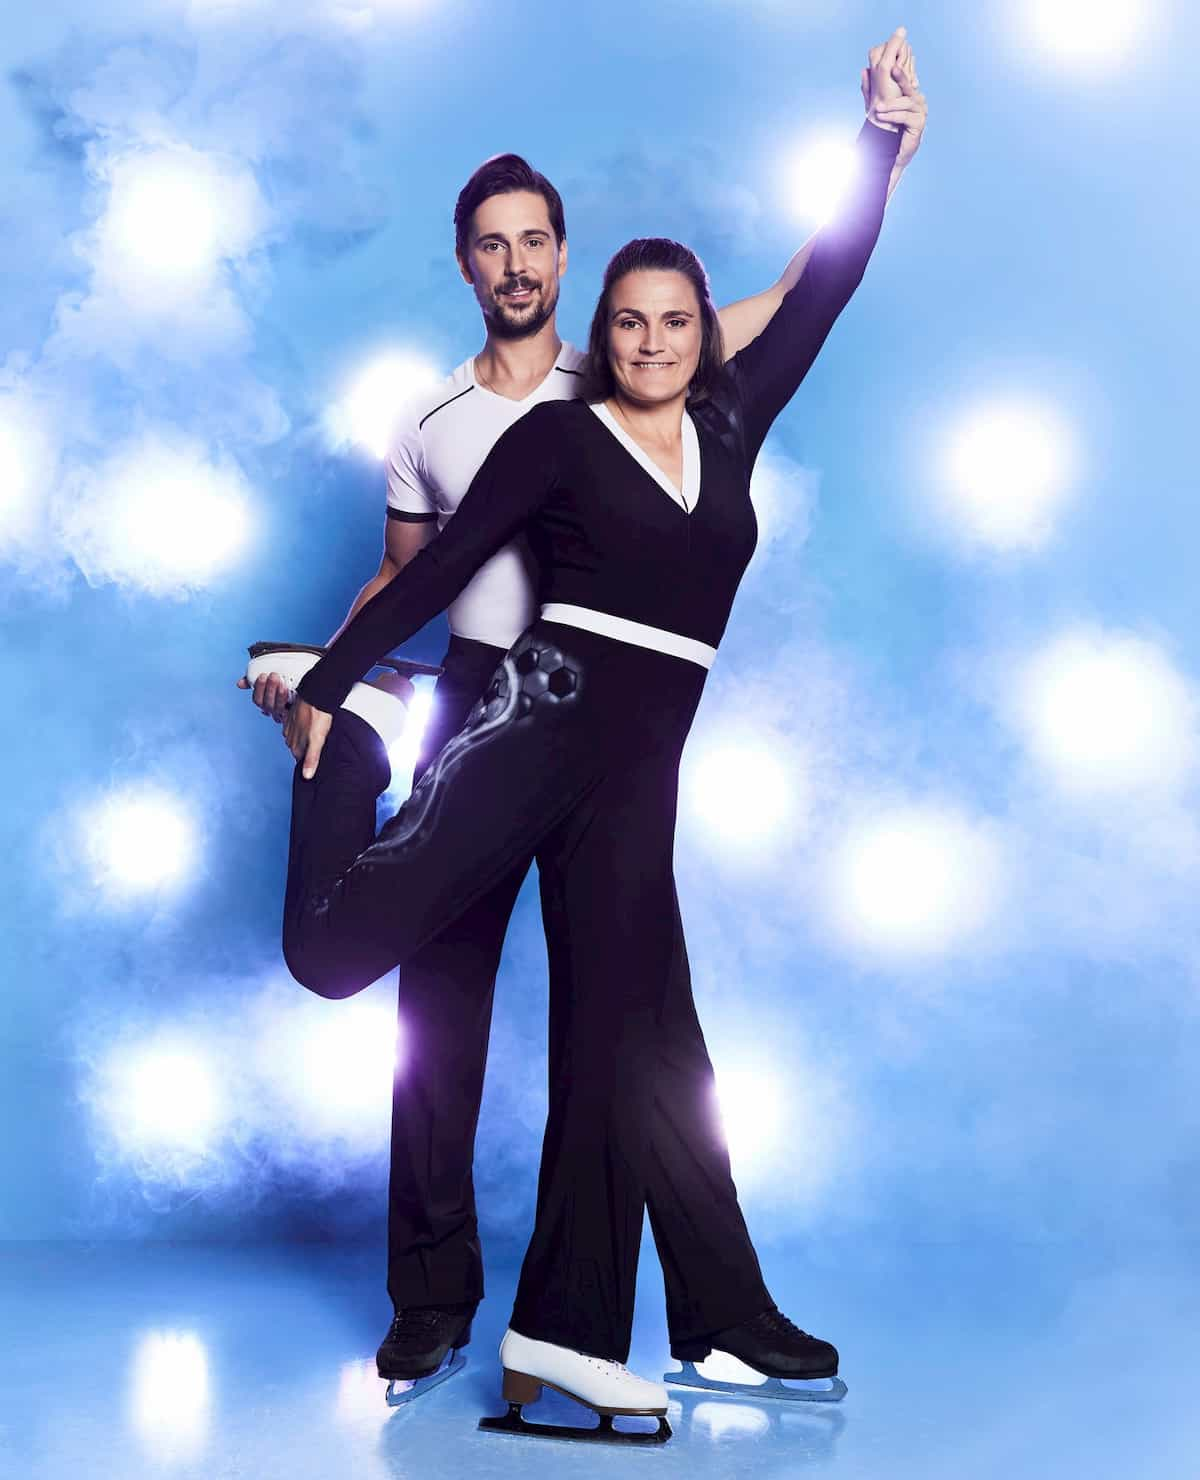 Nadine Angerer - David Vincour bei Dancing on Ice 2019 Herbst zweite Staffel